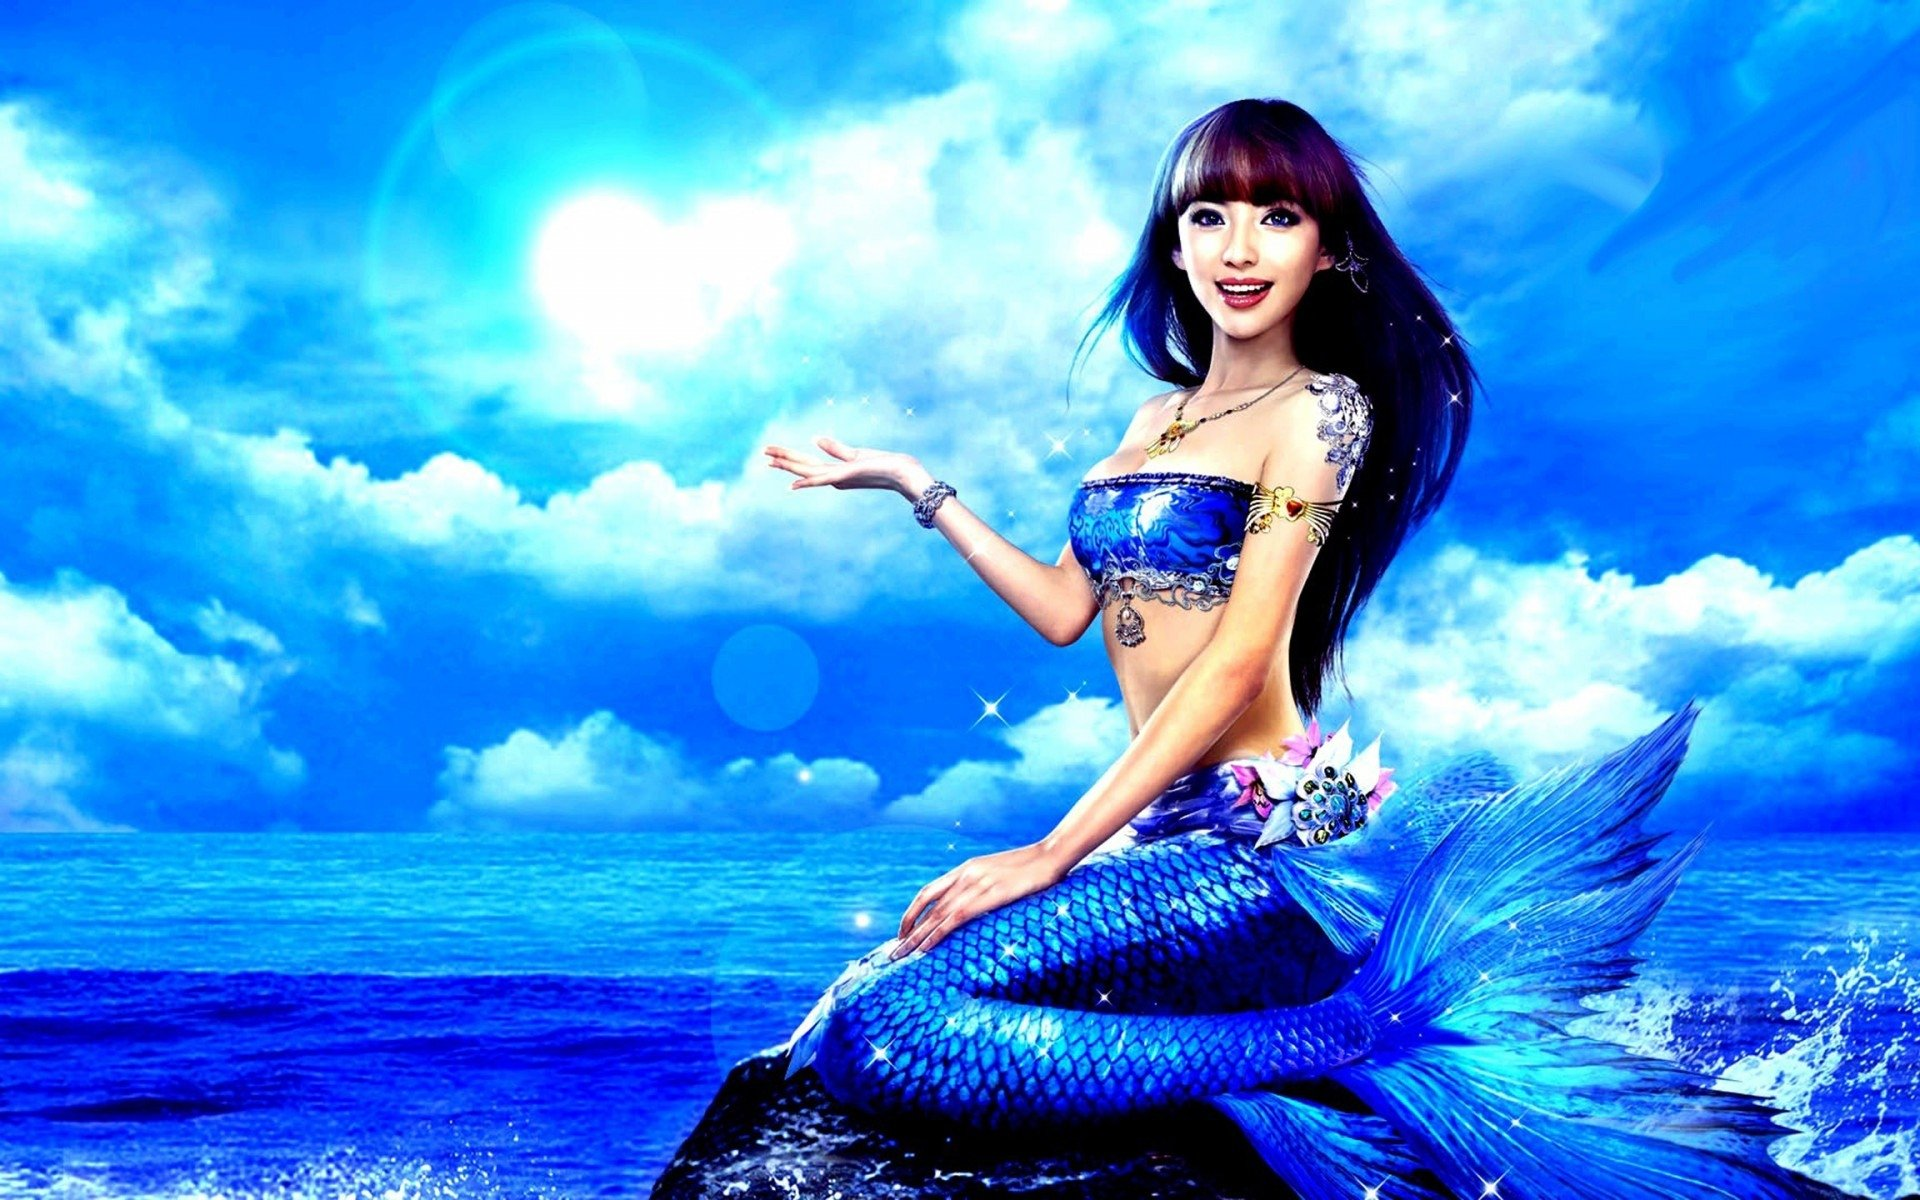 Wallpapers ID:686950